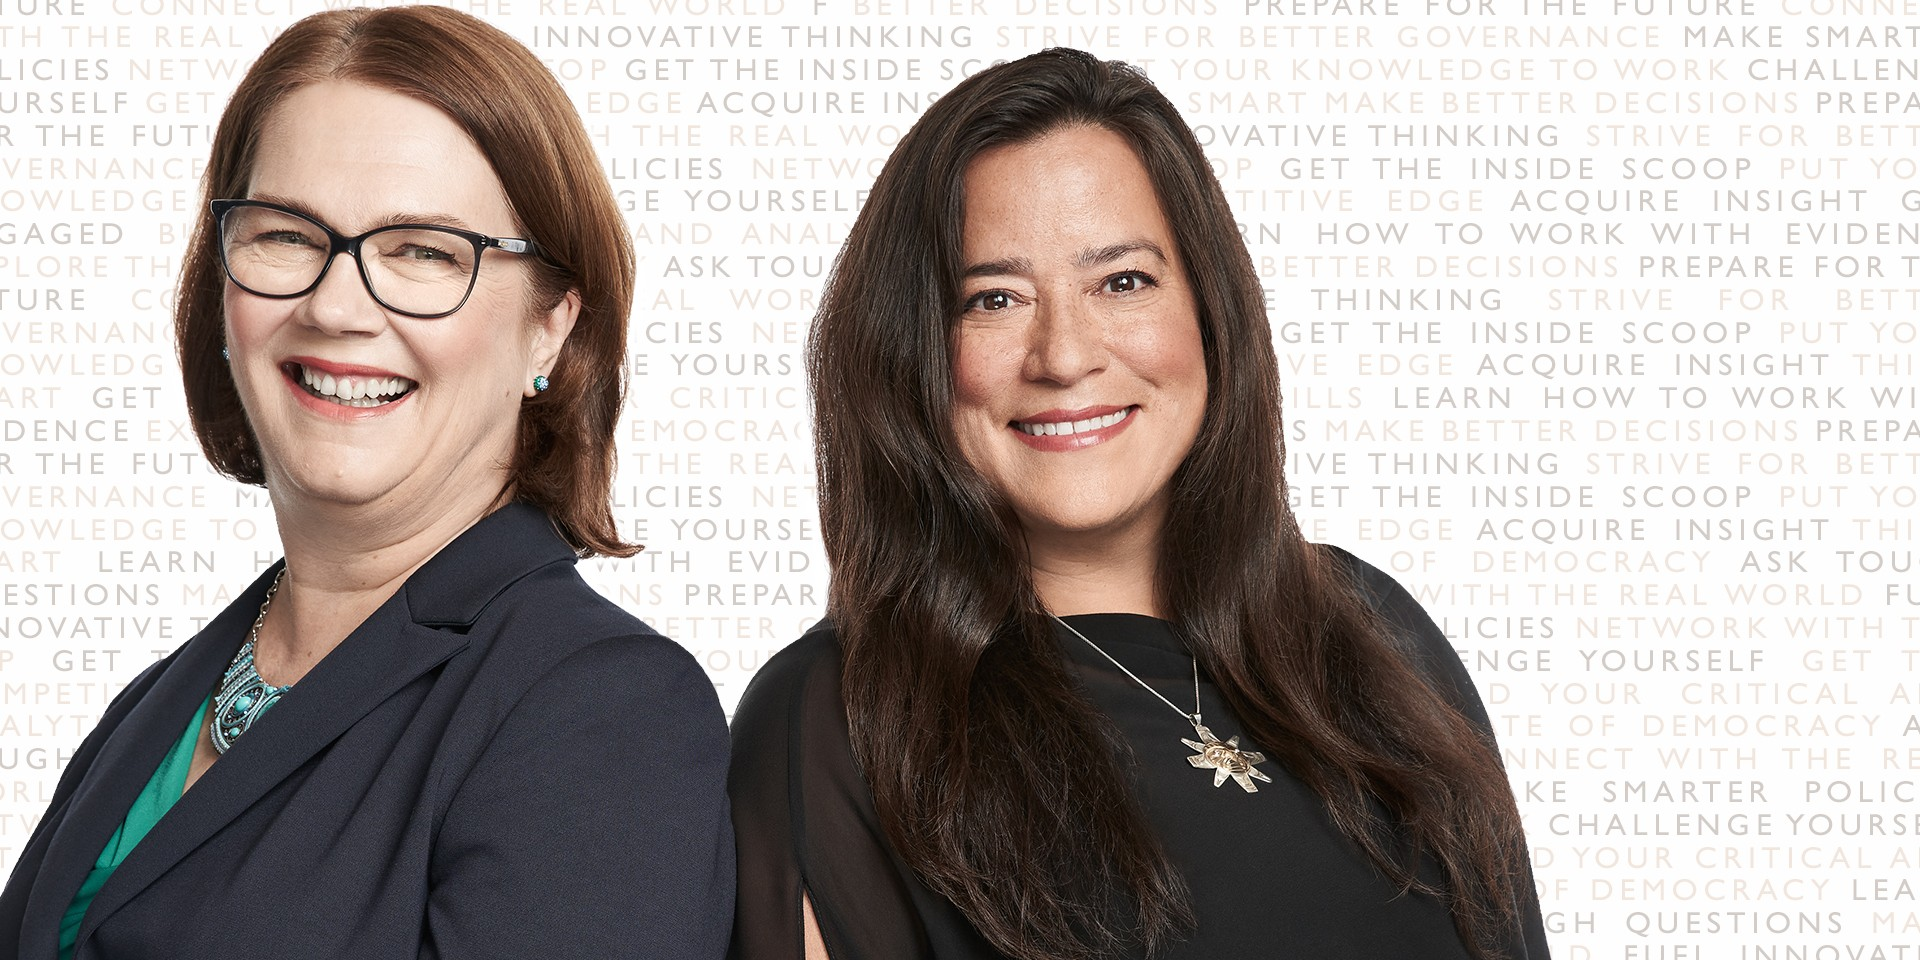 Nonaligned: The future of independence in Canadian politics with Honourable Jody Wilson-Raybould, Former Attorney General of Canada and Honourable Jane Philpott, Former Treasury Board President